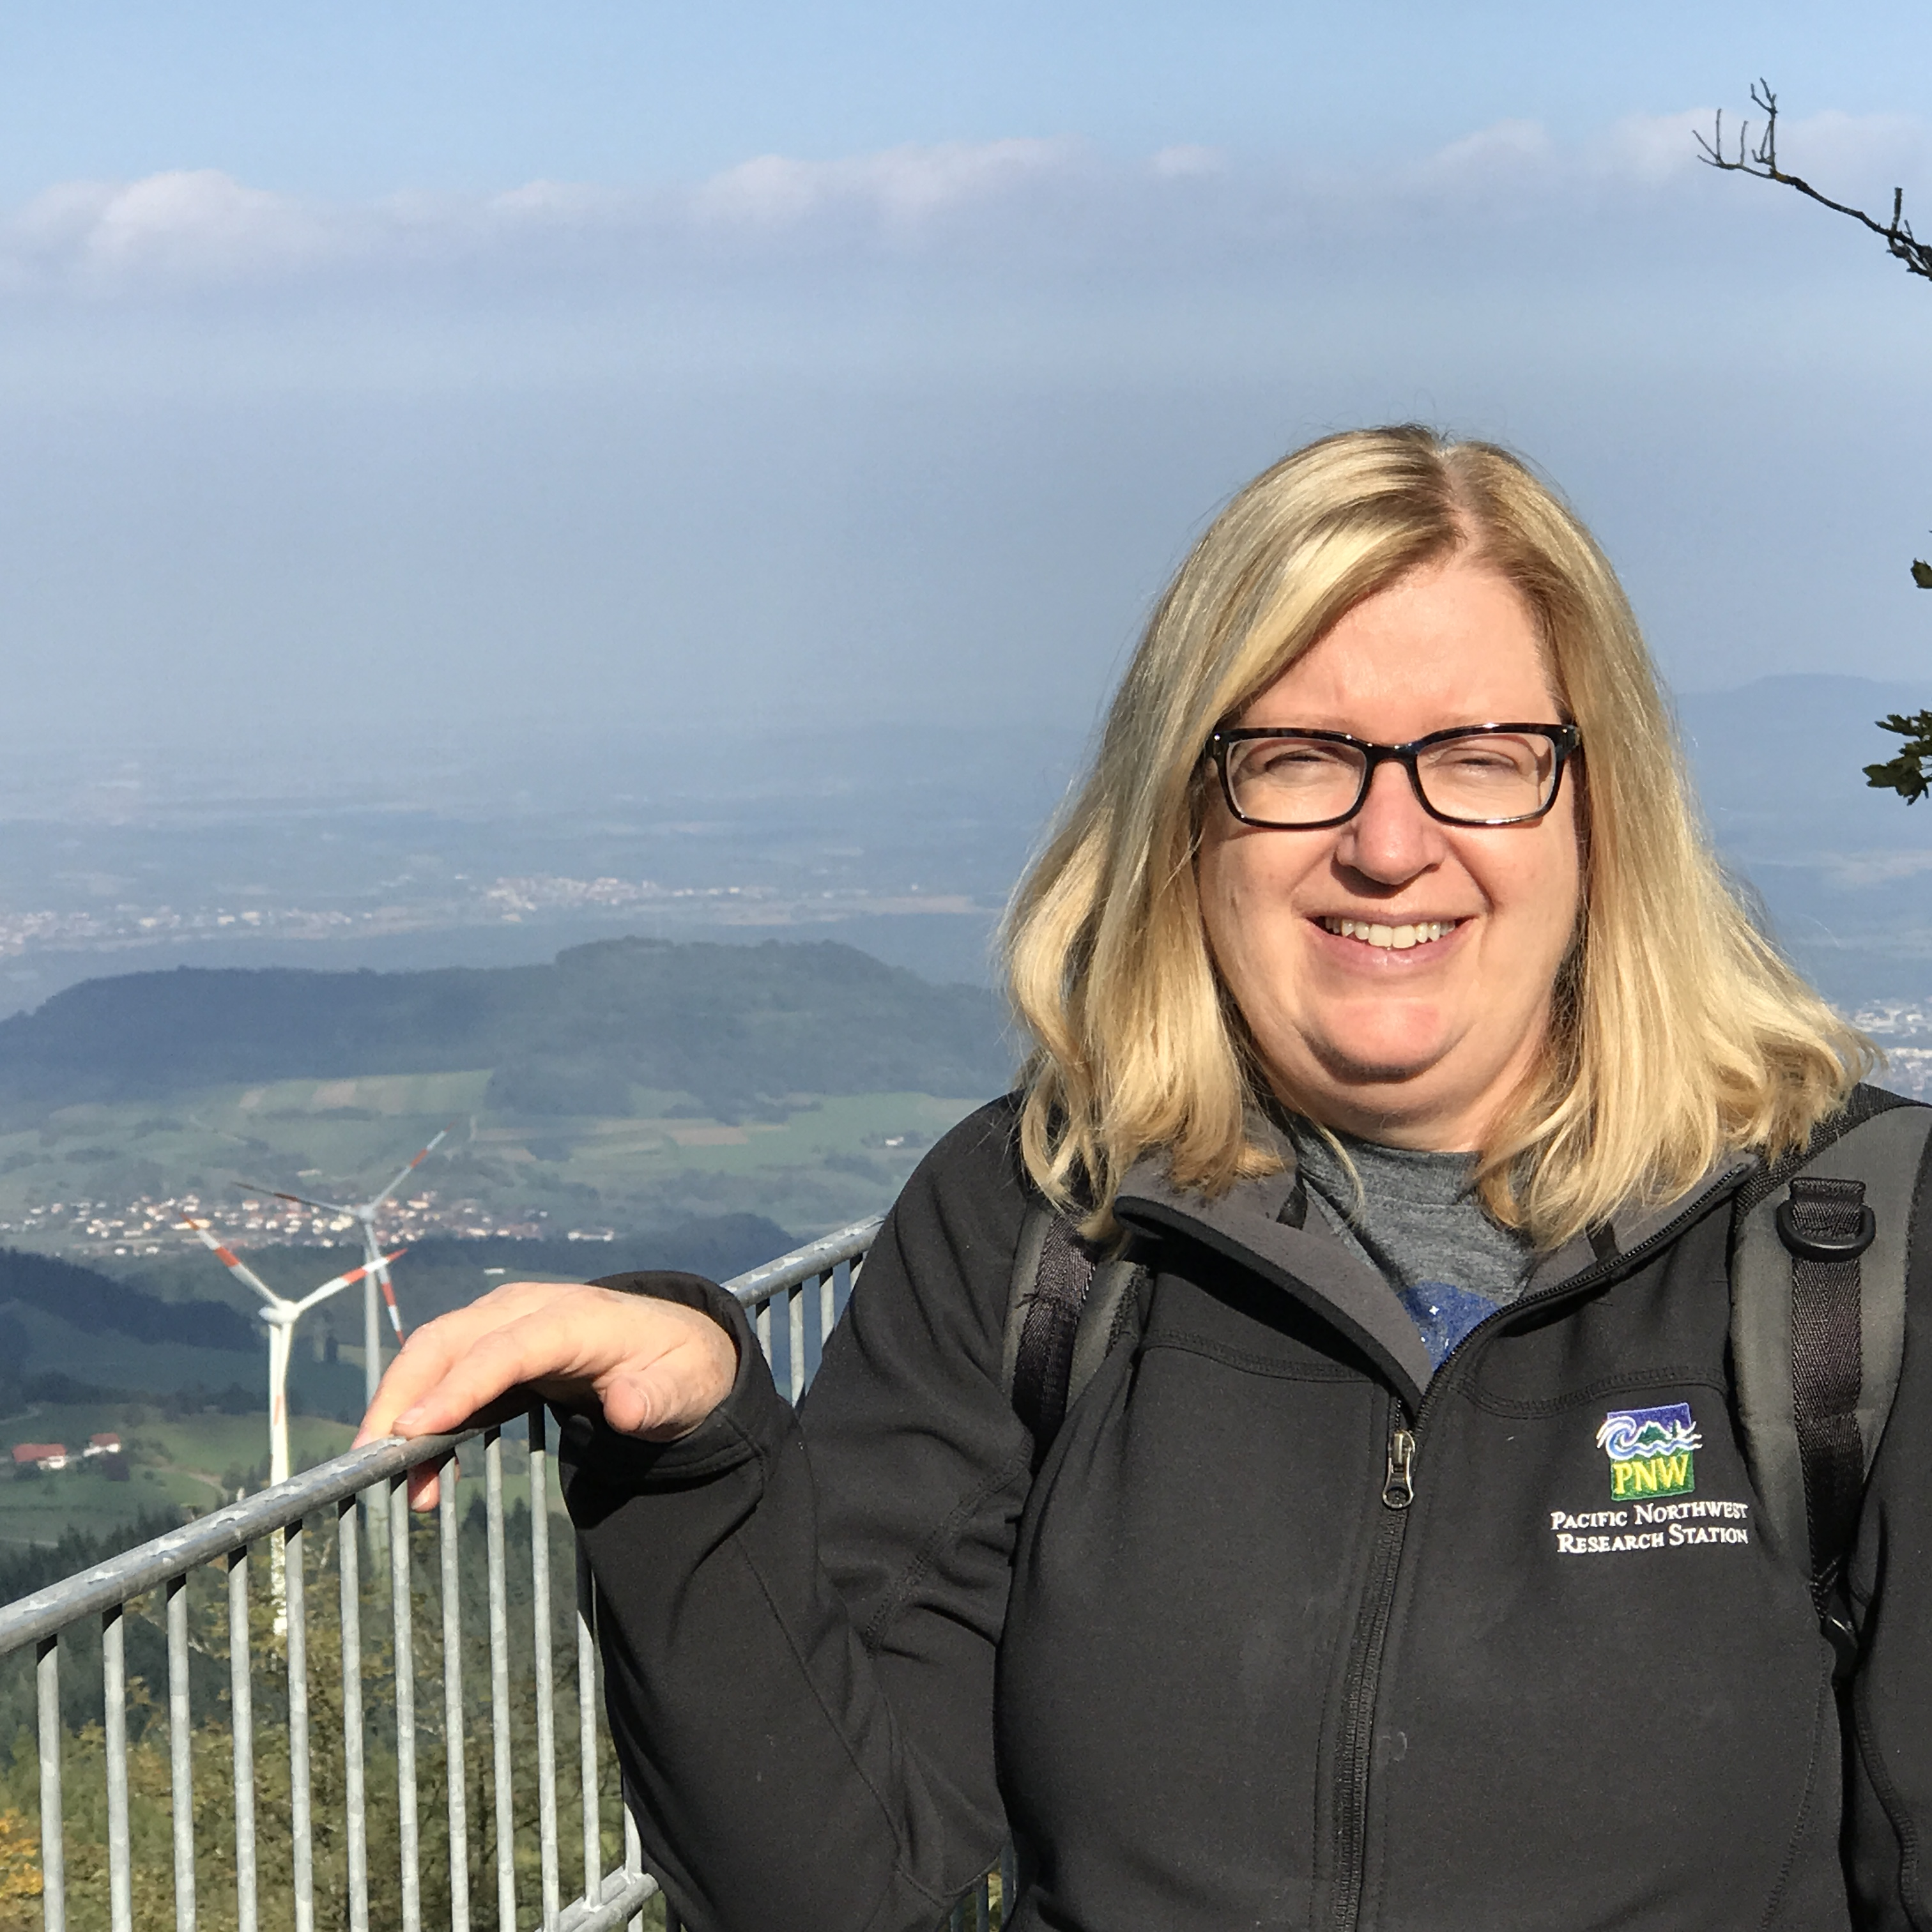 A picture of Cindy Miner with the Black Forest of Germany in the back ground.